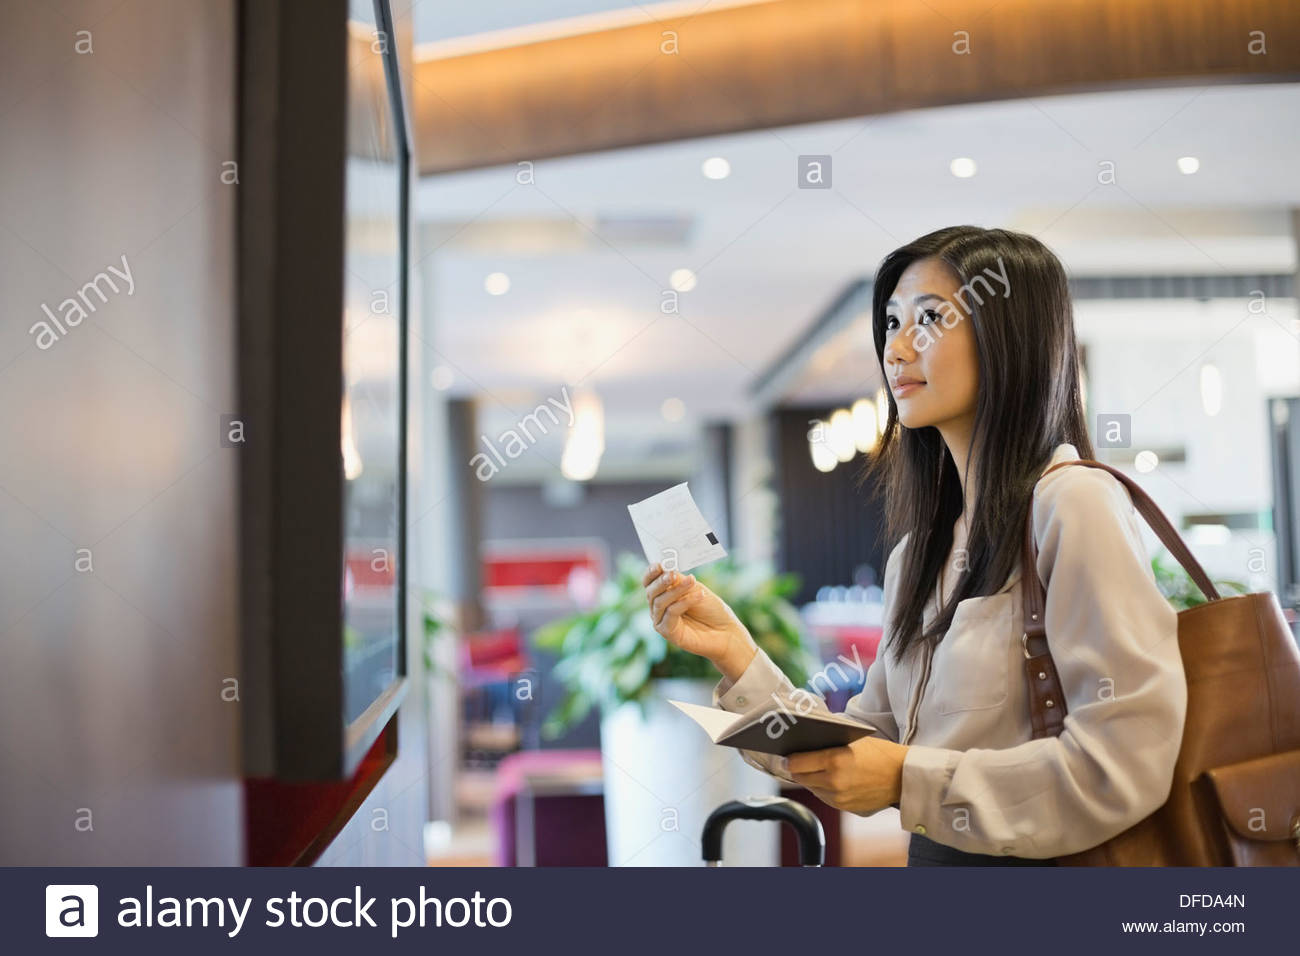 Businesswoman checking schedule at airport - Stock Image